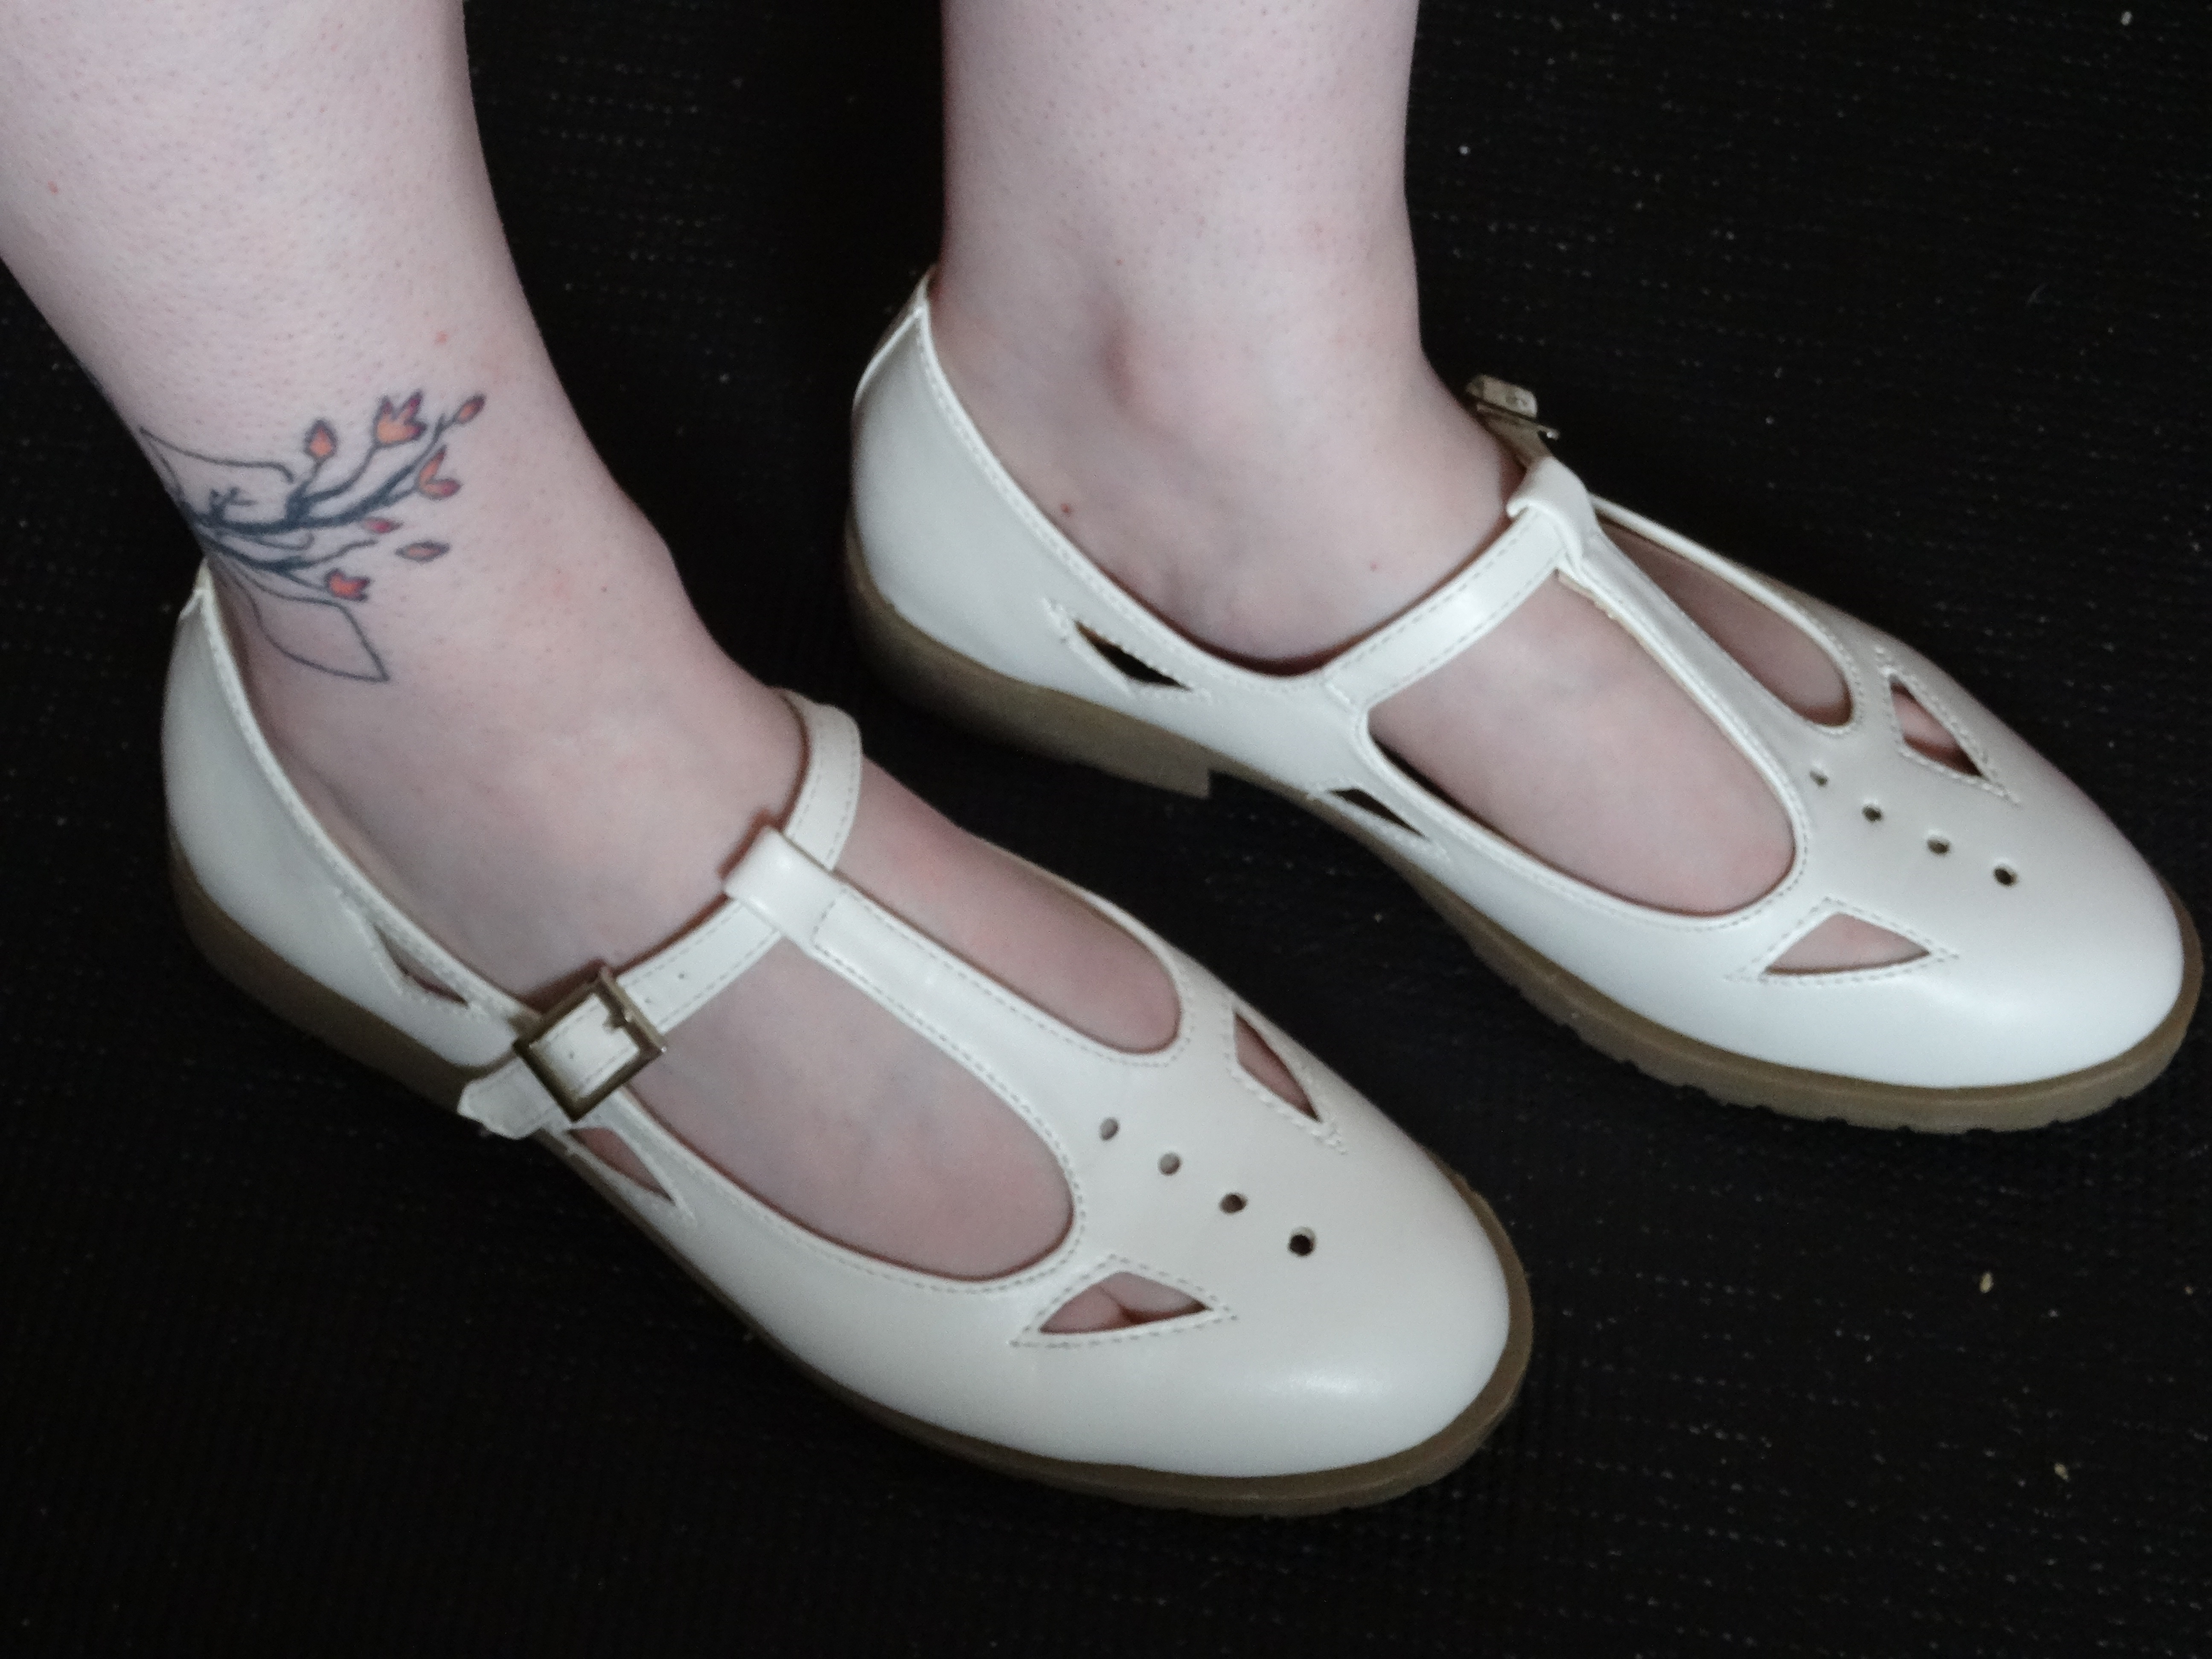 445745caf728 ASOS Molly T-Bar Flat Shoes Review - The Rambles of Nuggetstump